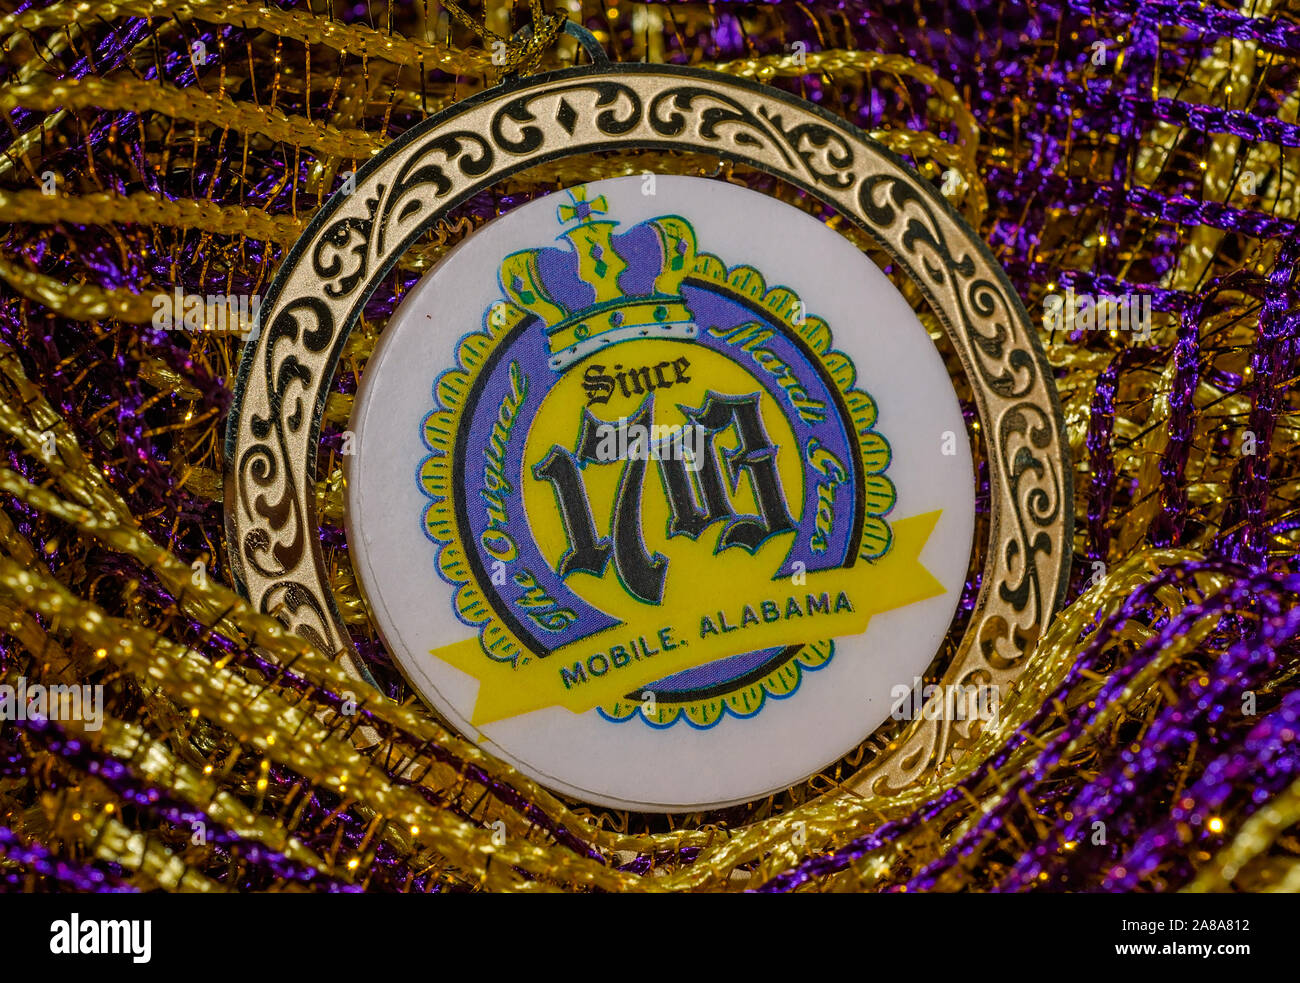 A Gold Medallion Proclaims Mobile Alabama As The Home Of The First Original Mardi Gras A Tradition Dating Back To 1703 Stock Photo Alamy